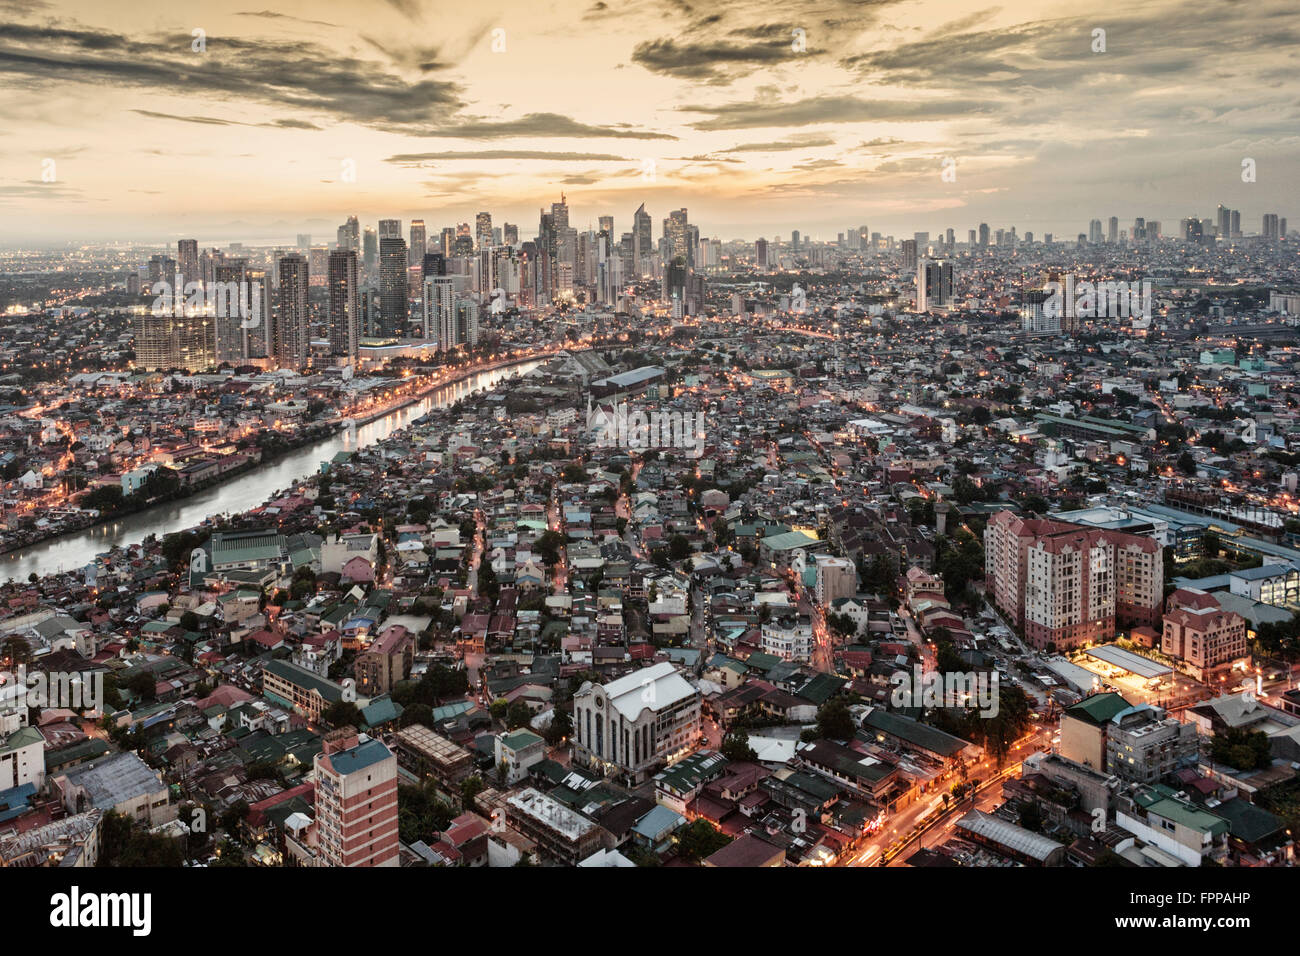 Asia, East Asia, Philippines, Manila, Makati and Pasig river, business district, skyscrapers, city skyline, sunset - Stock Image